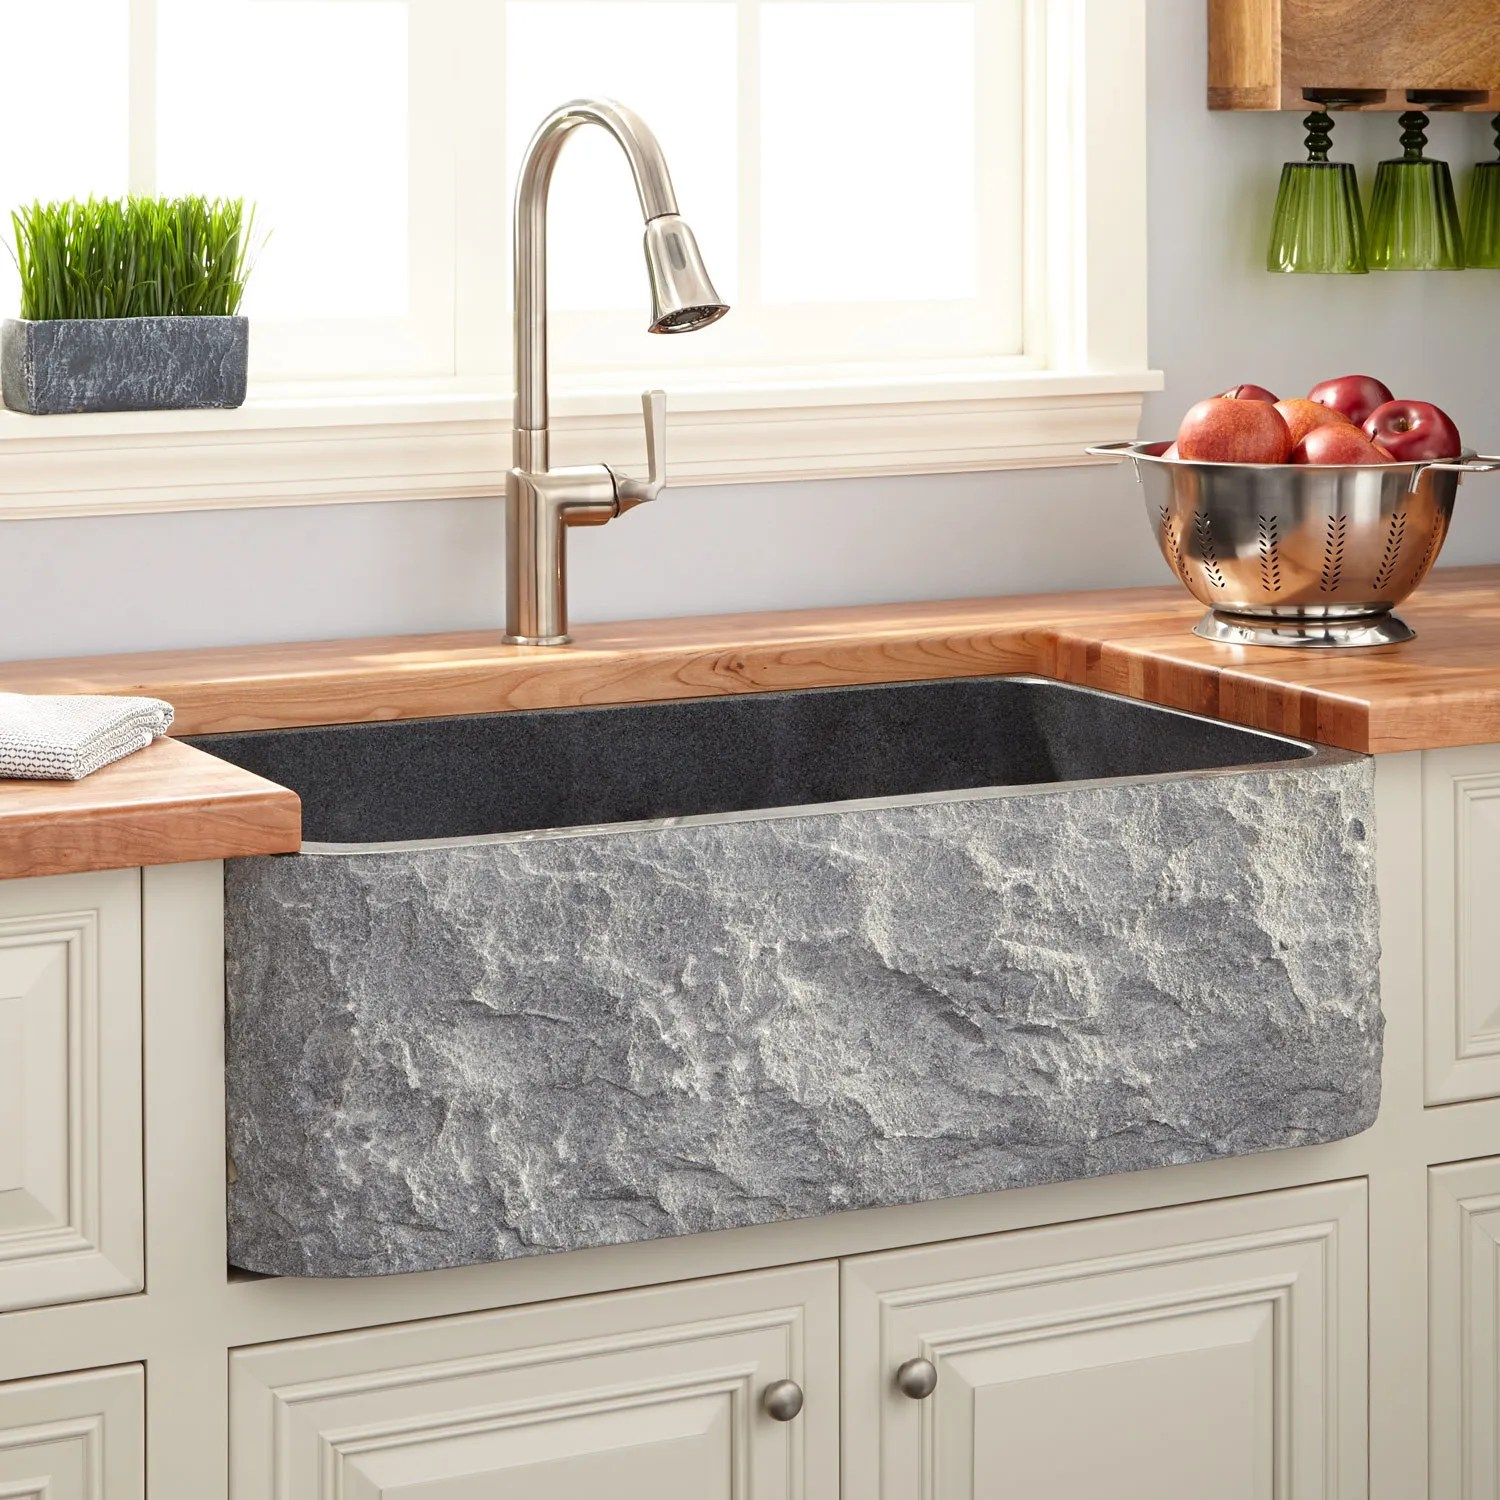 stone kitchen sinks granite kitchen sinks 33 Polished Granite Farmhouse Sink Chiseled Apron Blue Gray